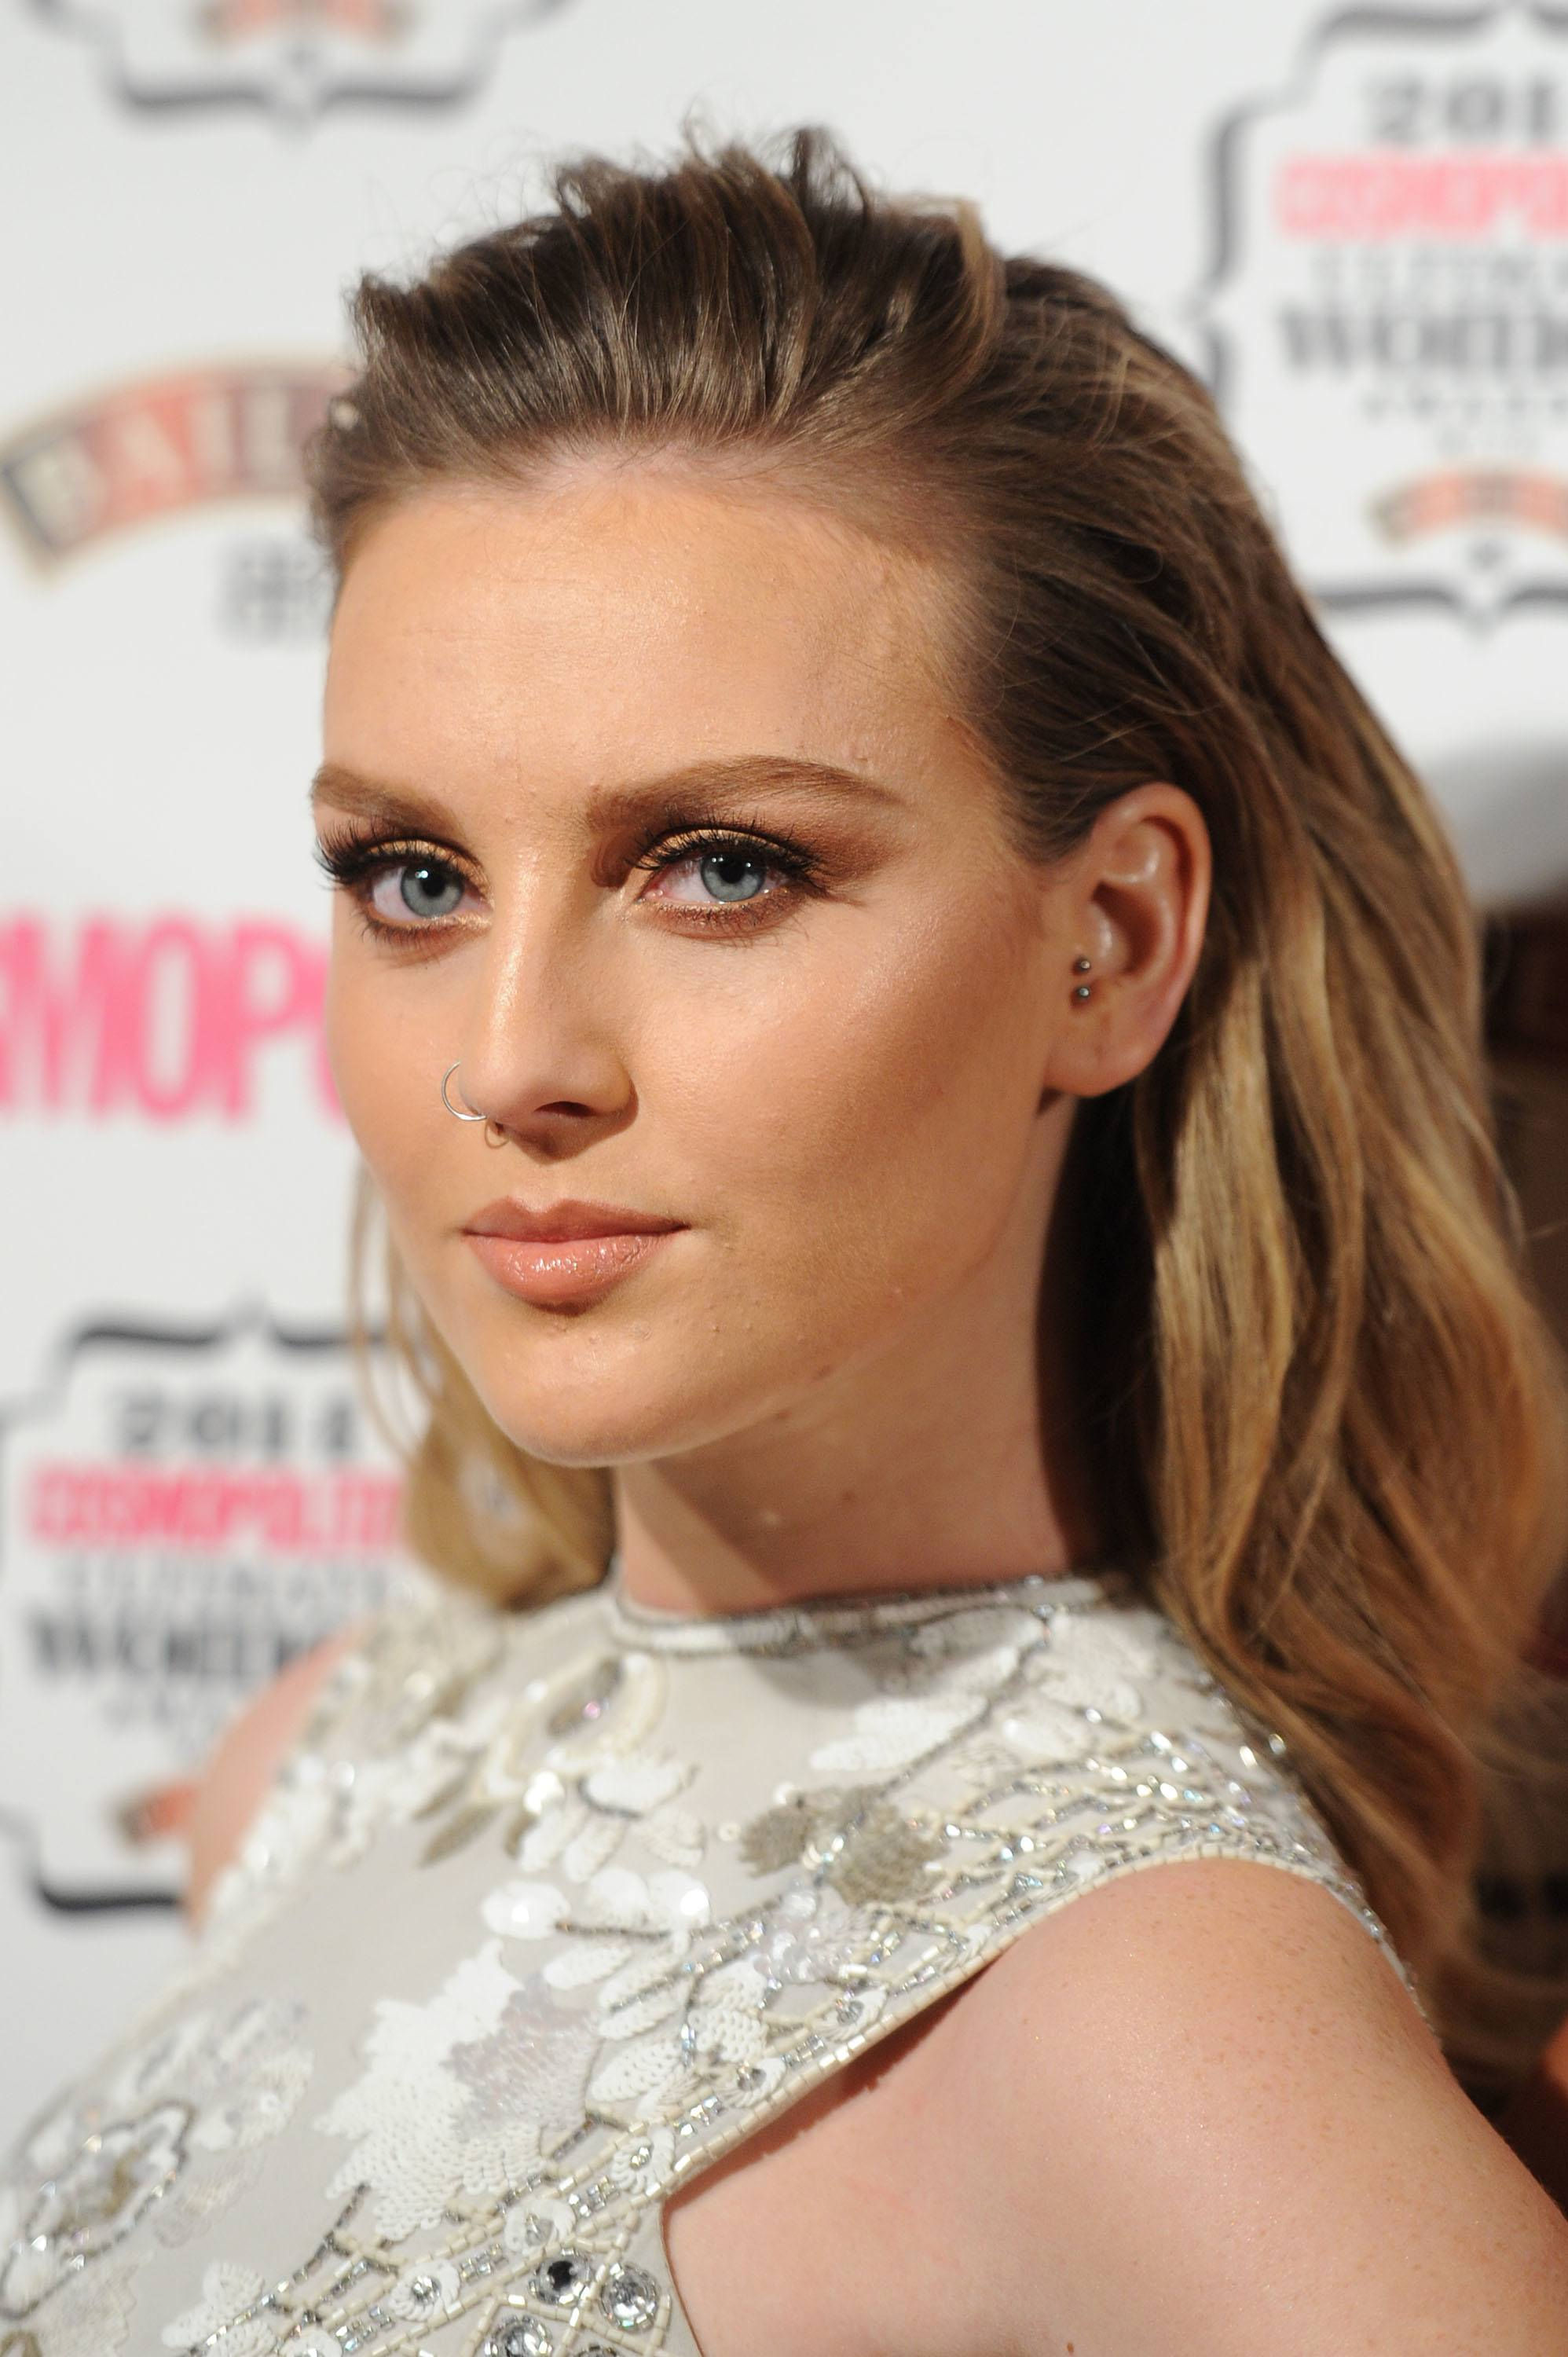 little mix star perrie edwards on the red carpet with pushed back hair